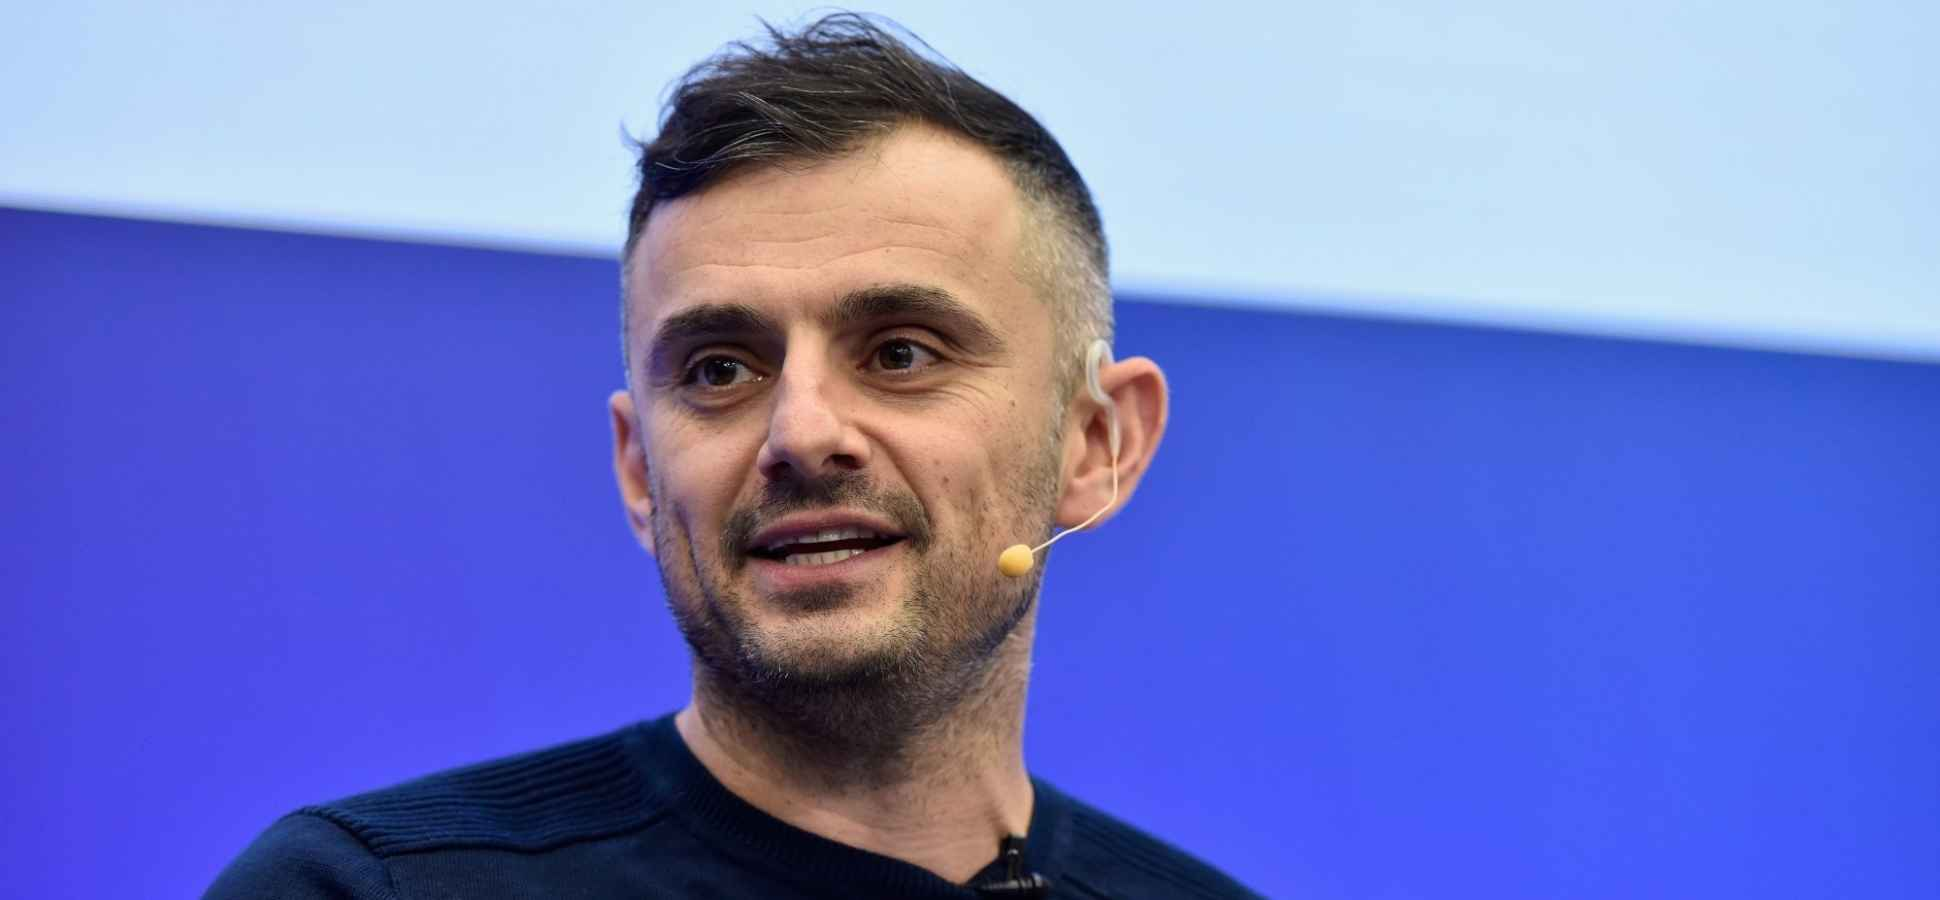 Gary Vaynerchuk Reveals the Skill That Made Him Millions (and That Anyone Can Learn)